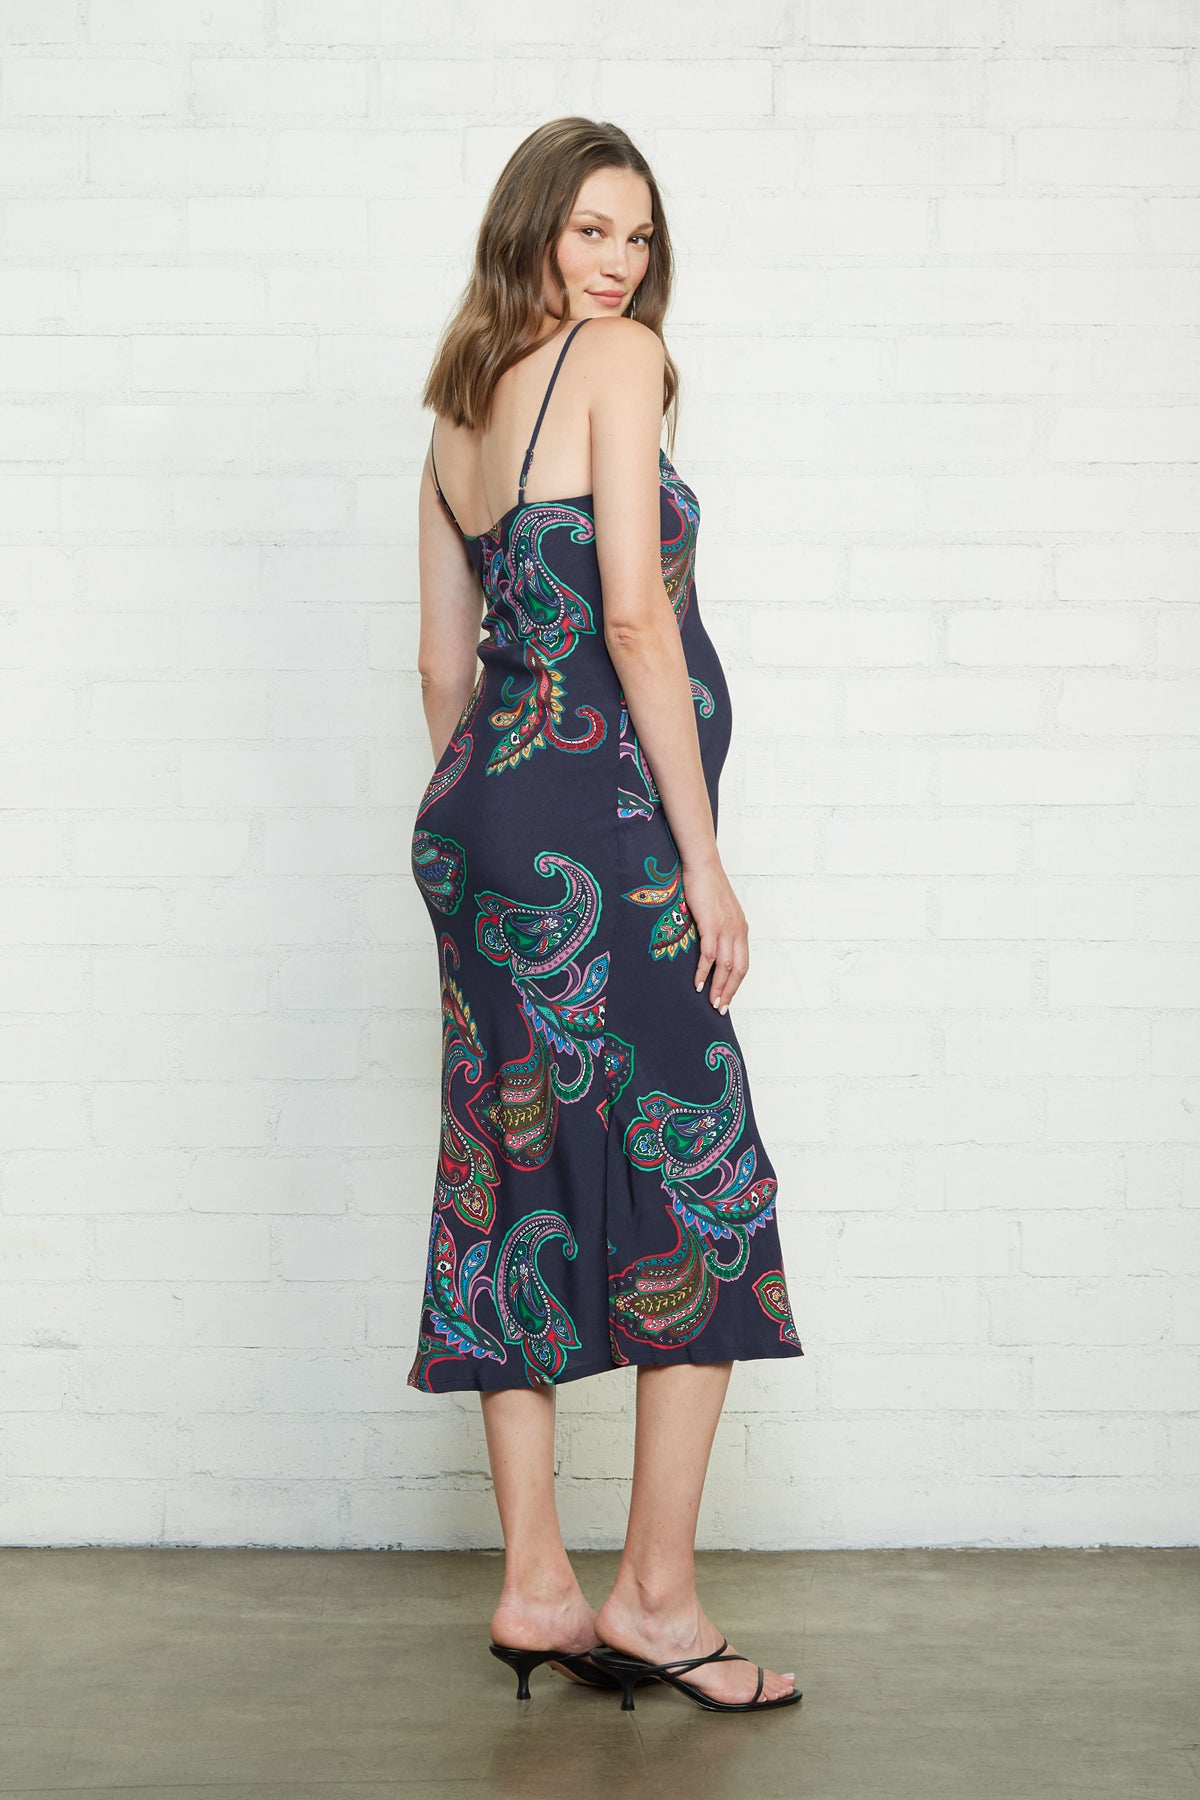 Crepe Bias Slip Dress - Paisley, Maternity